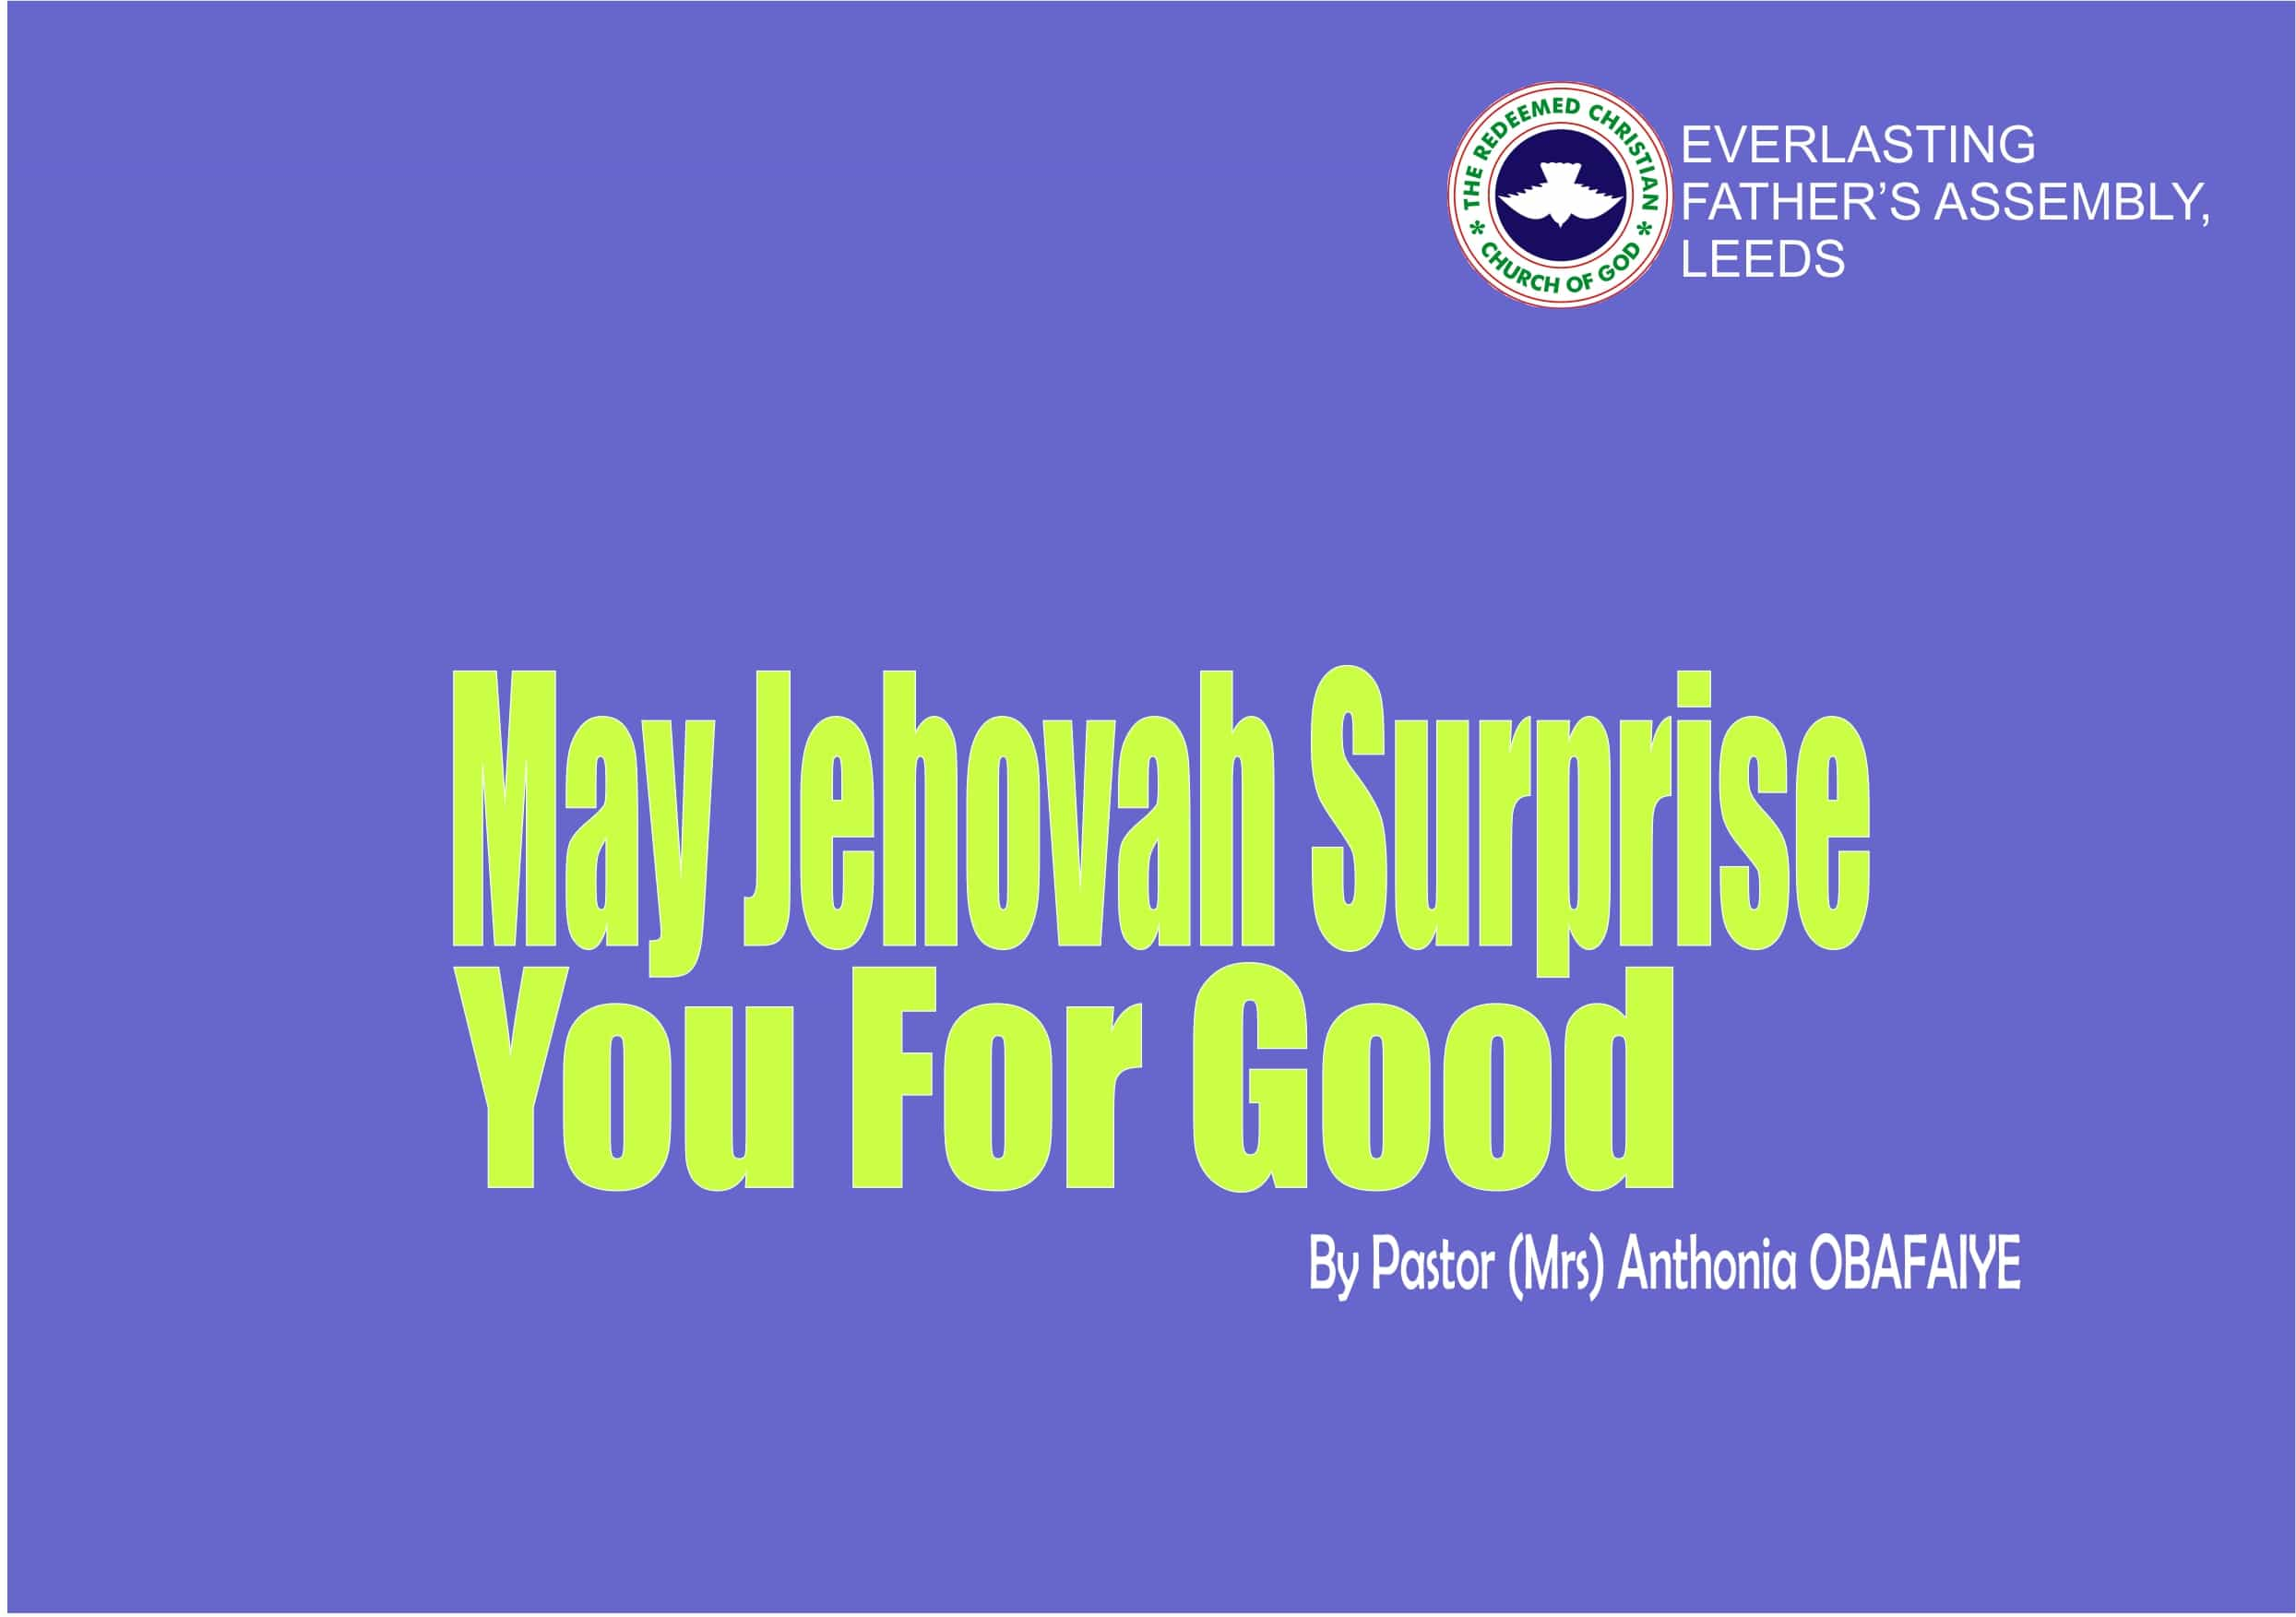 May Jehovah Surprise You For Good, by Pastor (Mrs) Anthonia Obafaiye